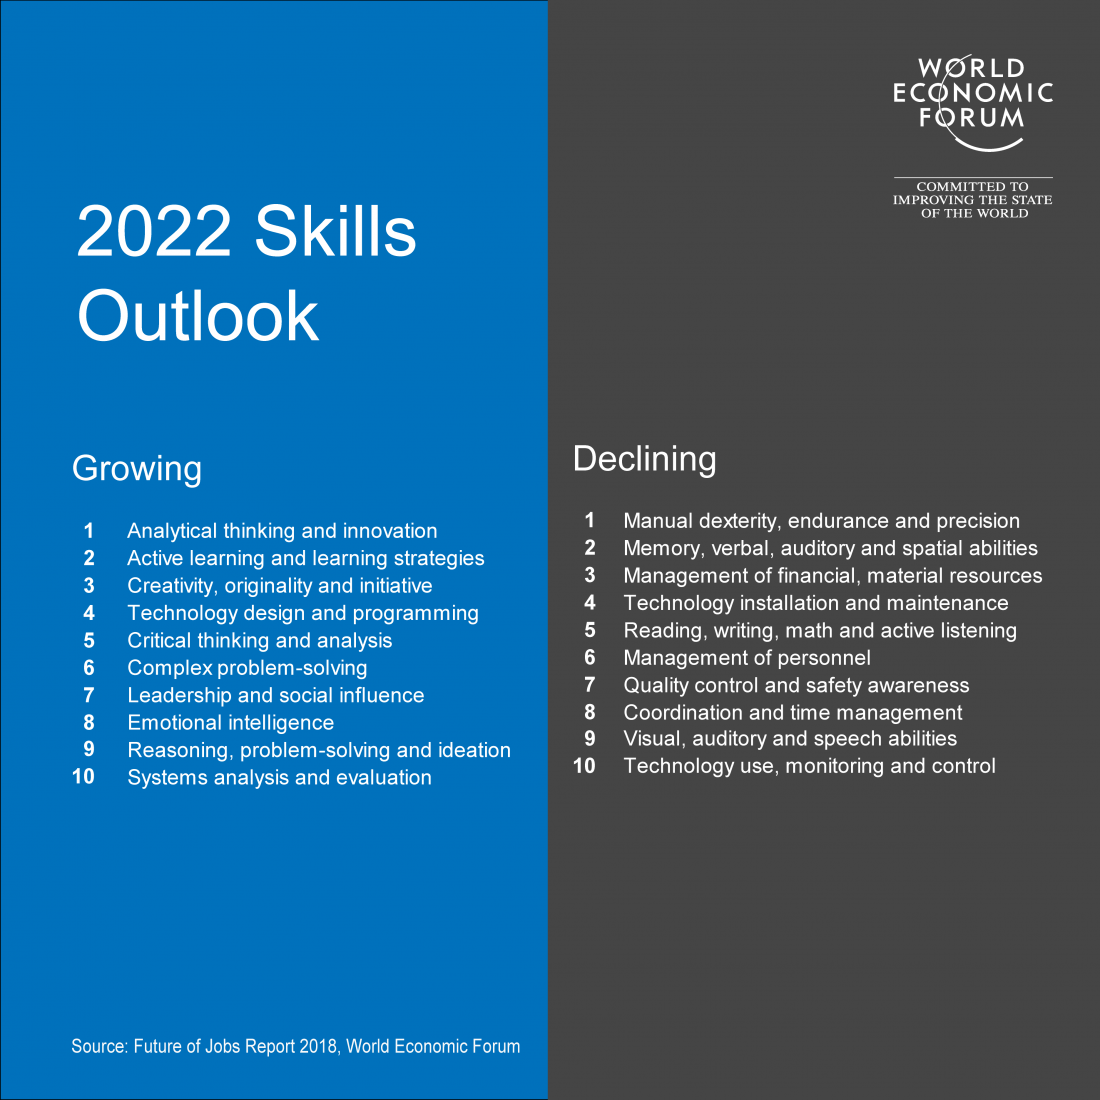 Types of skills that will grow and decline as Industry 4.0 progresses.